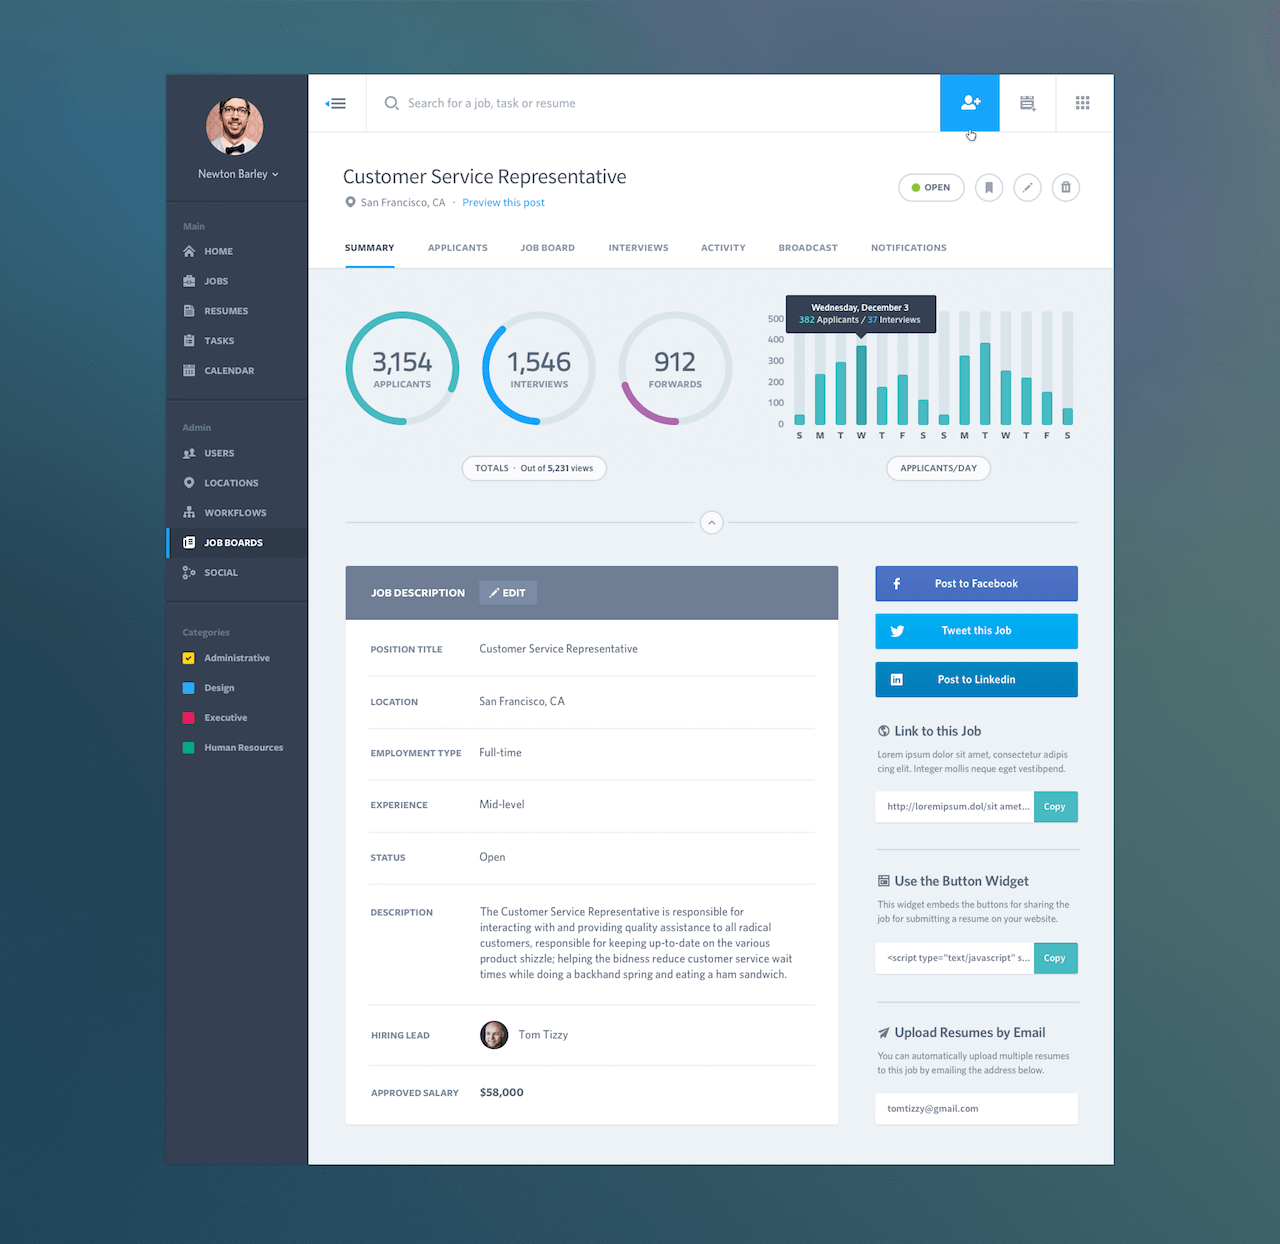 Job Summary Dashboard